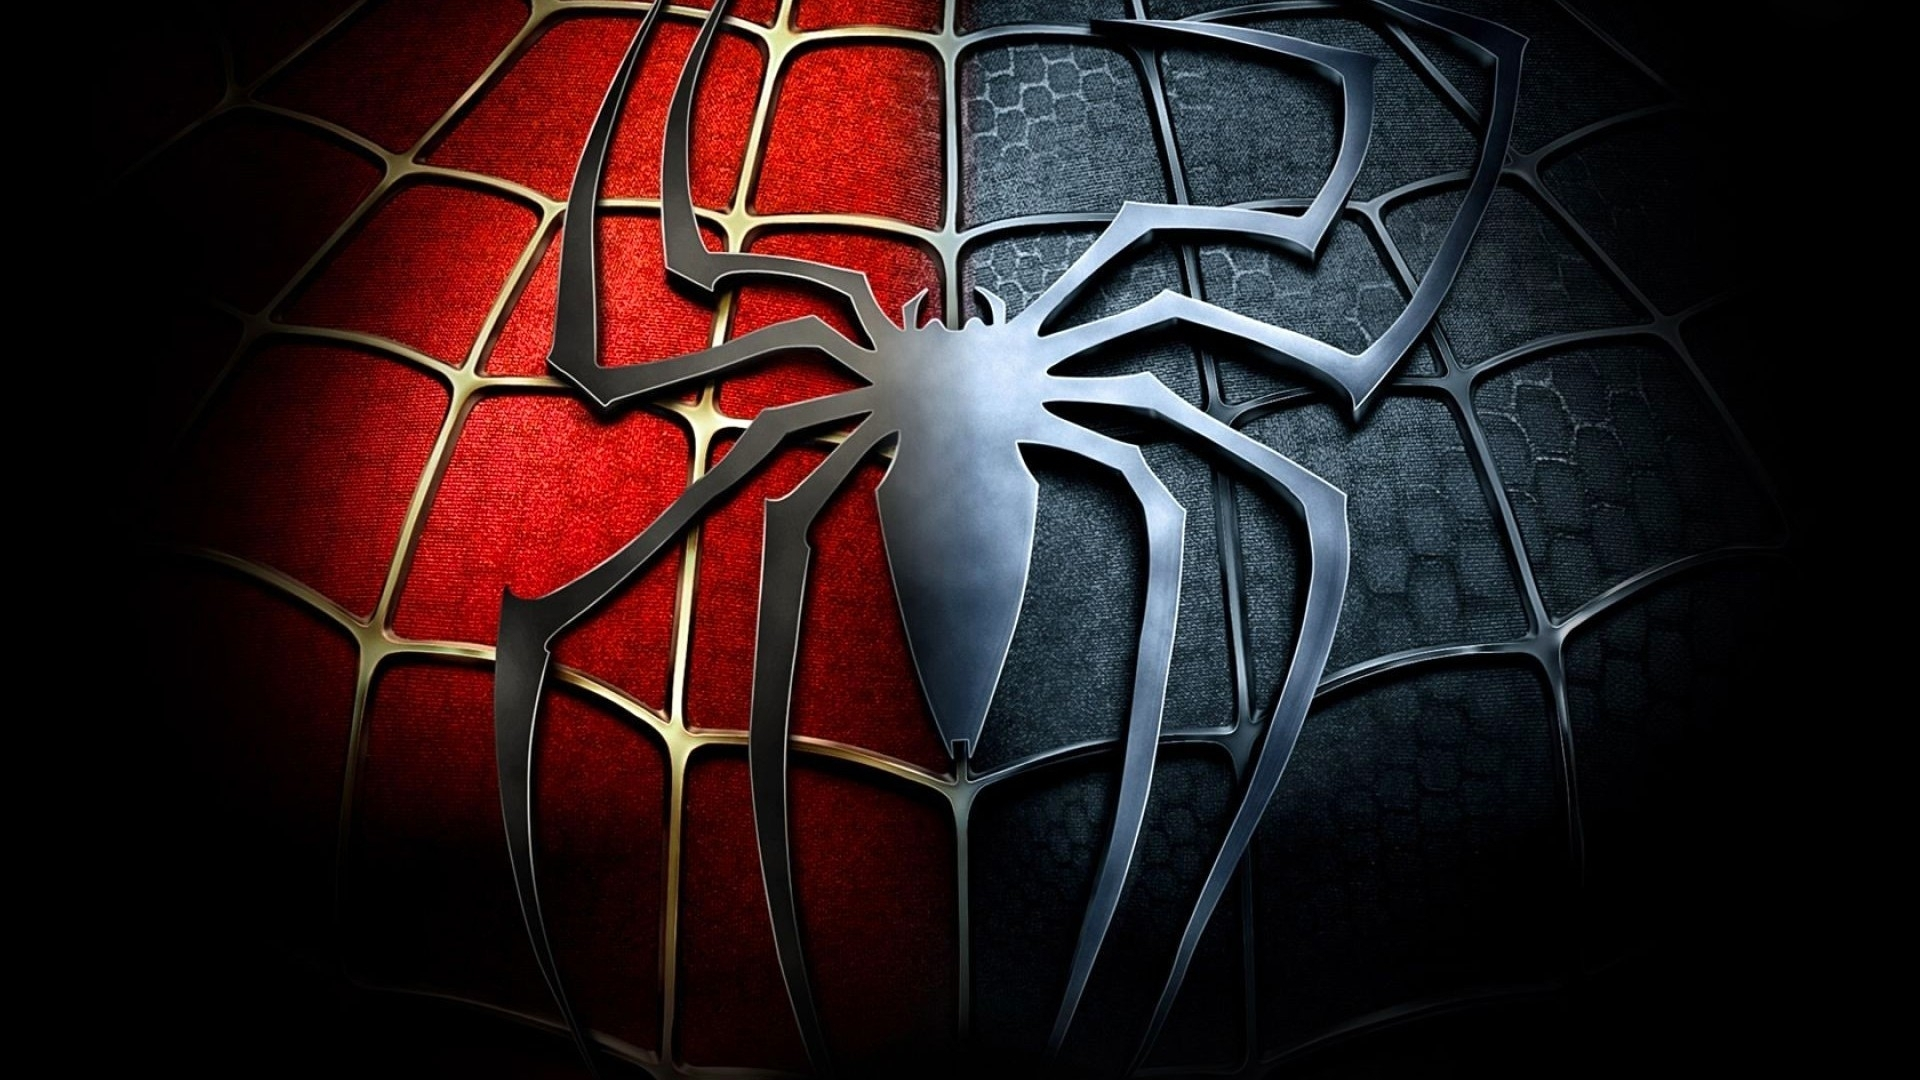 Title Spiderman Hd Wallpapers 1080p Group 85 Dimension 1920 X 1080 File Type JPG JPEG